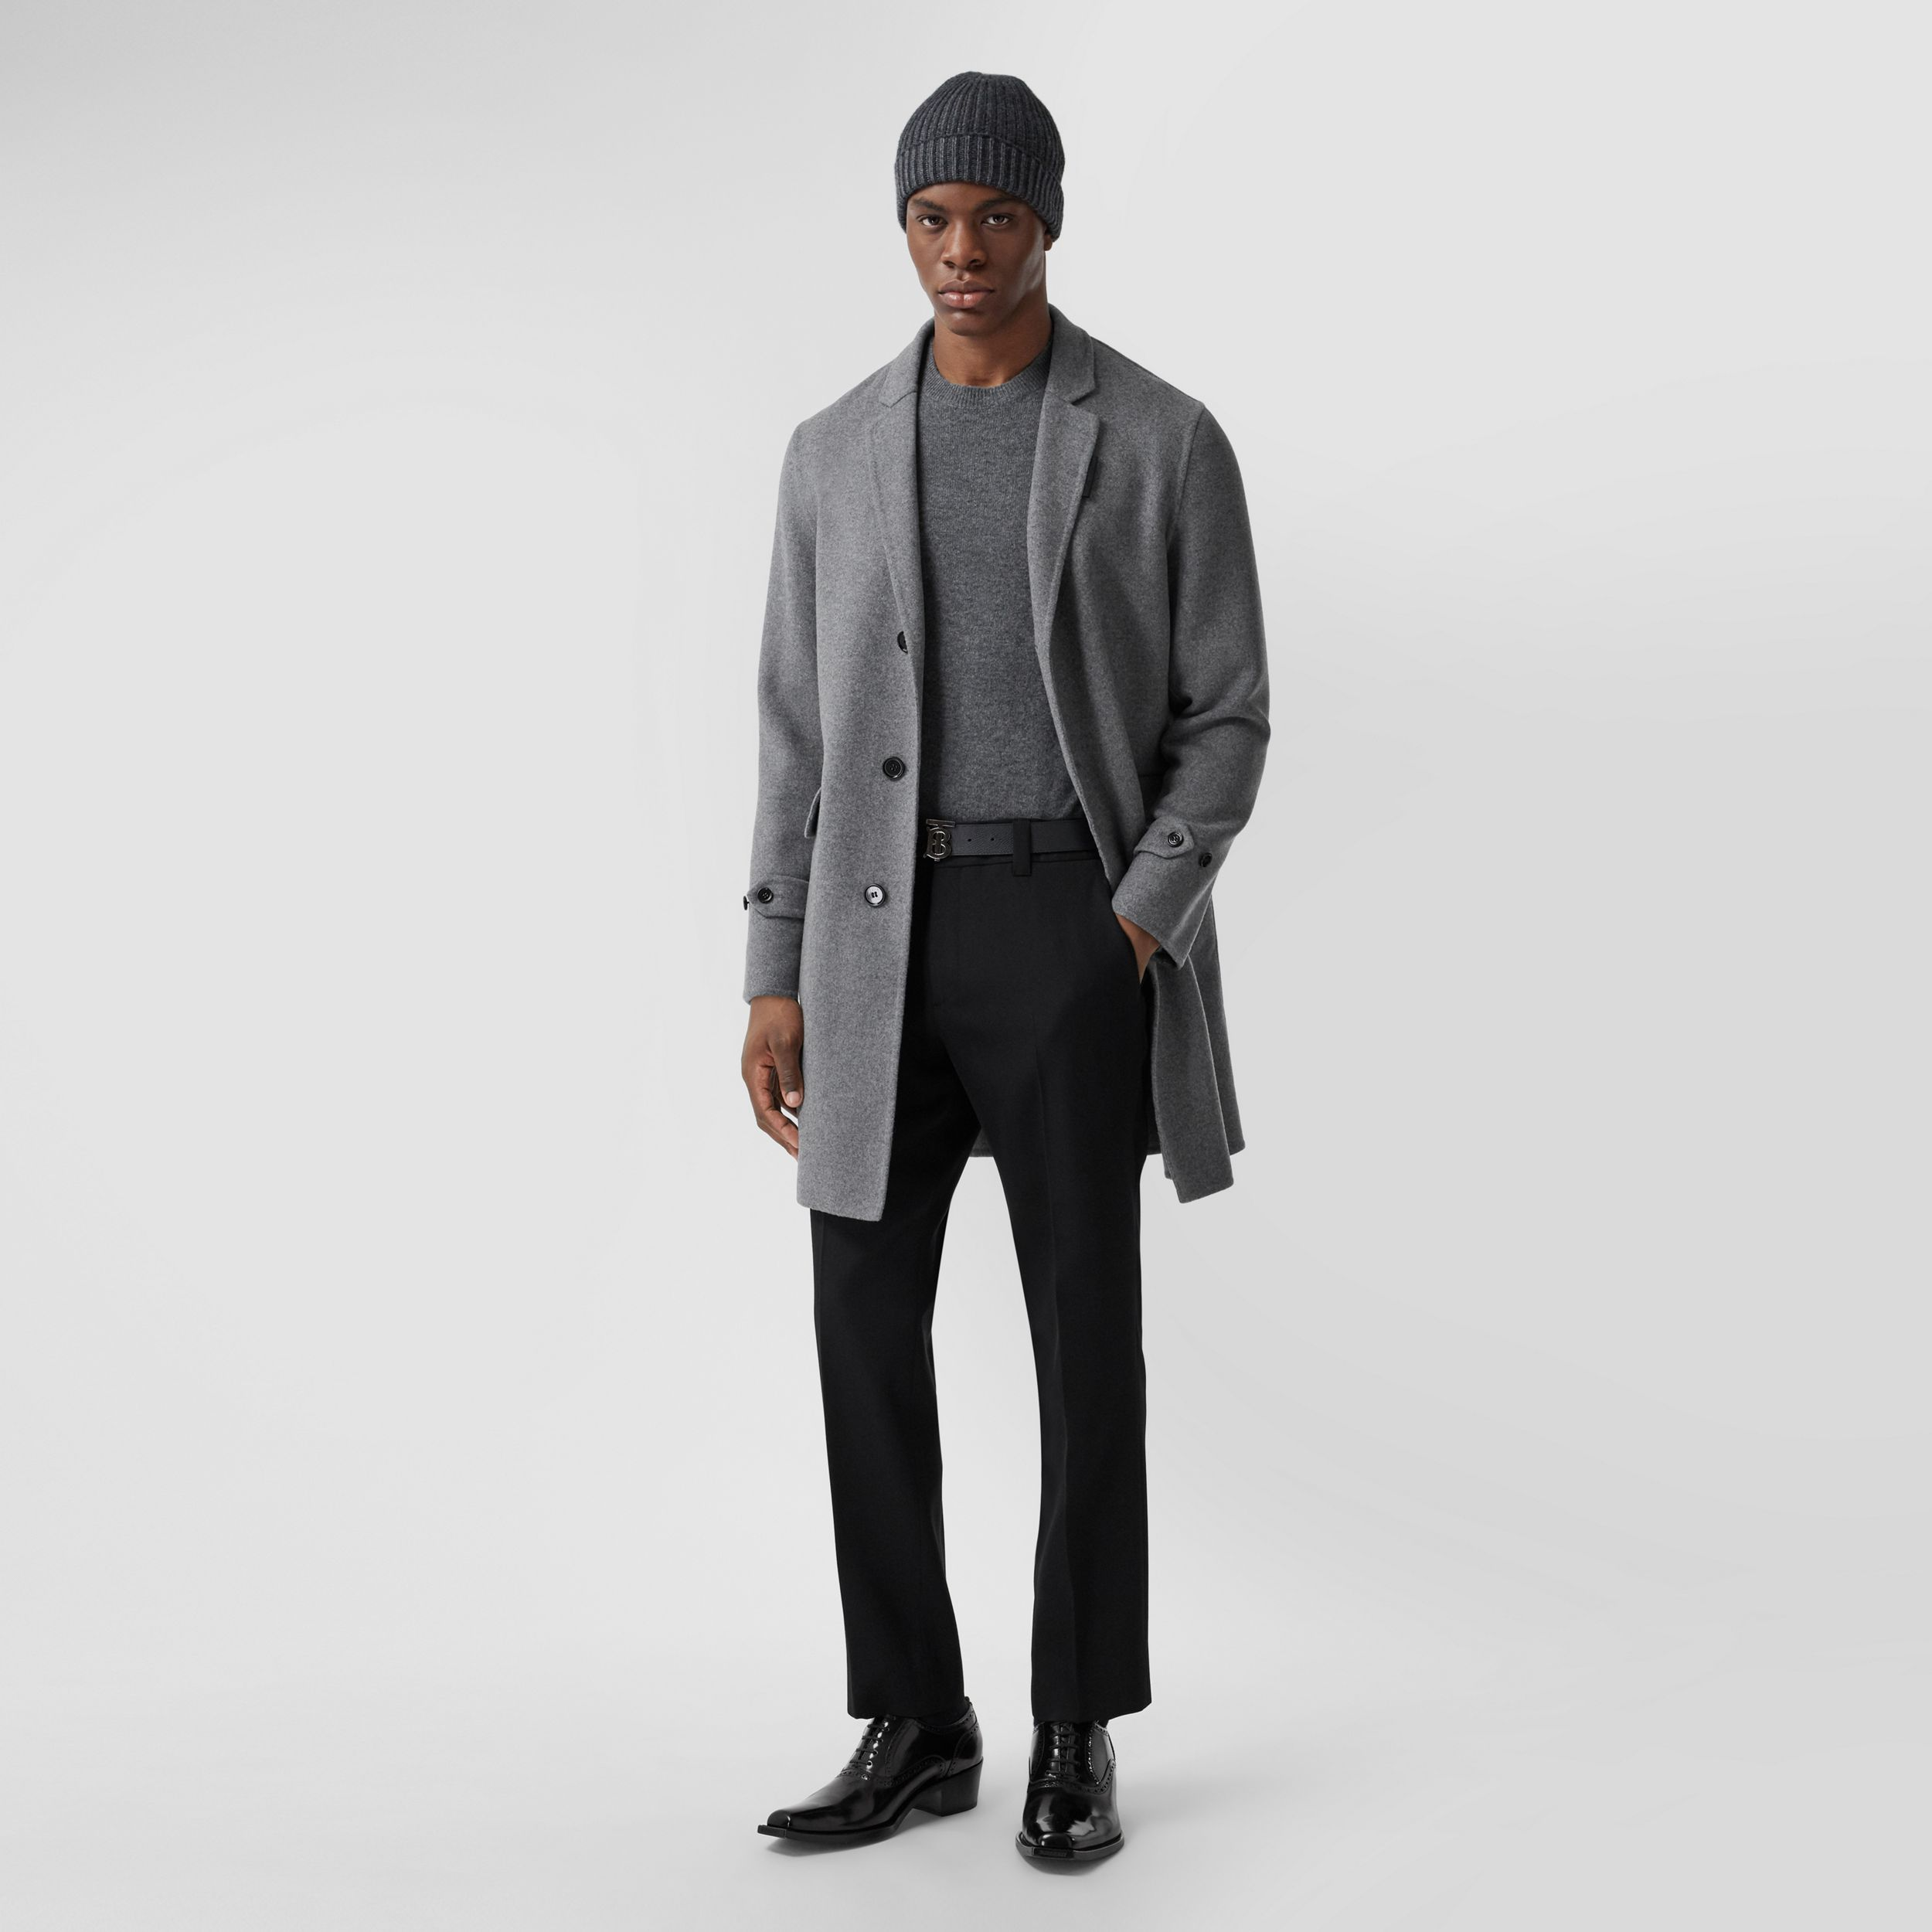 Wool Cashmere Lab Coat in Charcoal - Men | Burberry United States - 1